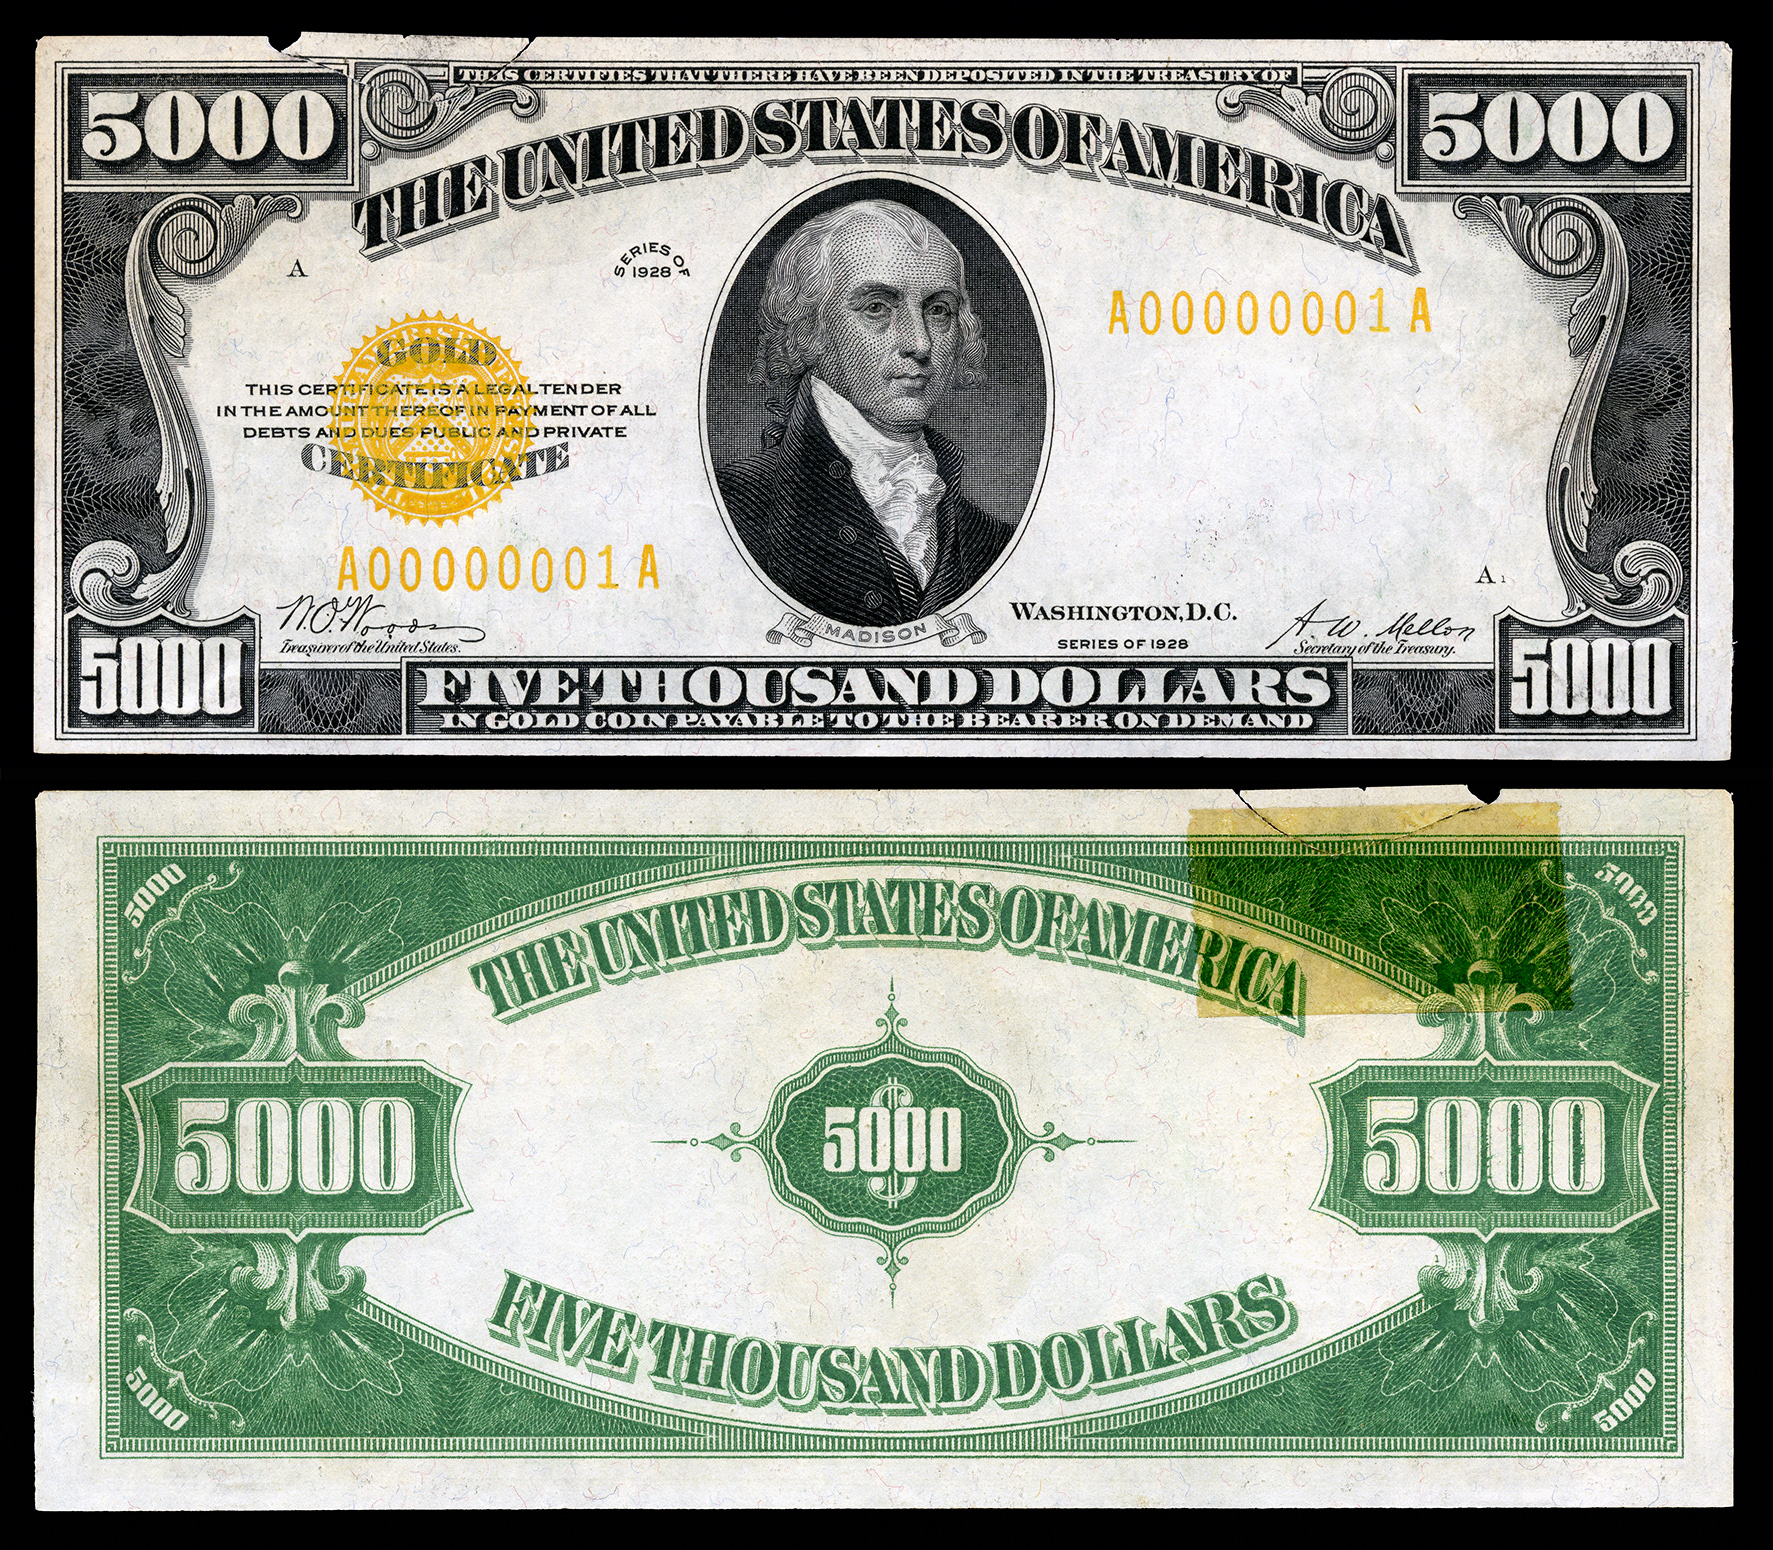 Gold certificate wikipedia 5000 gold certificate series 1928 fr2410 depicting james madison xflitez Gallery